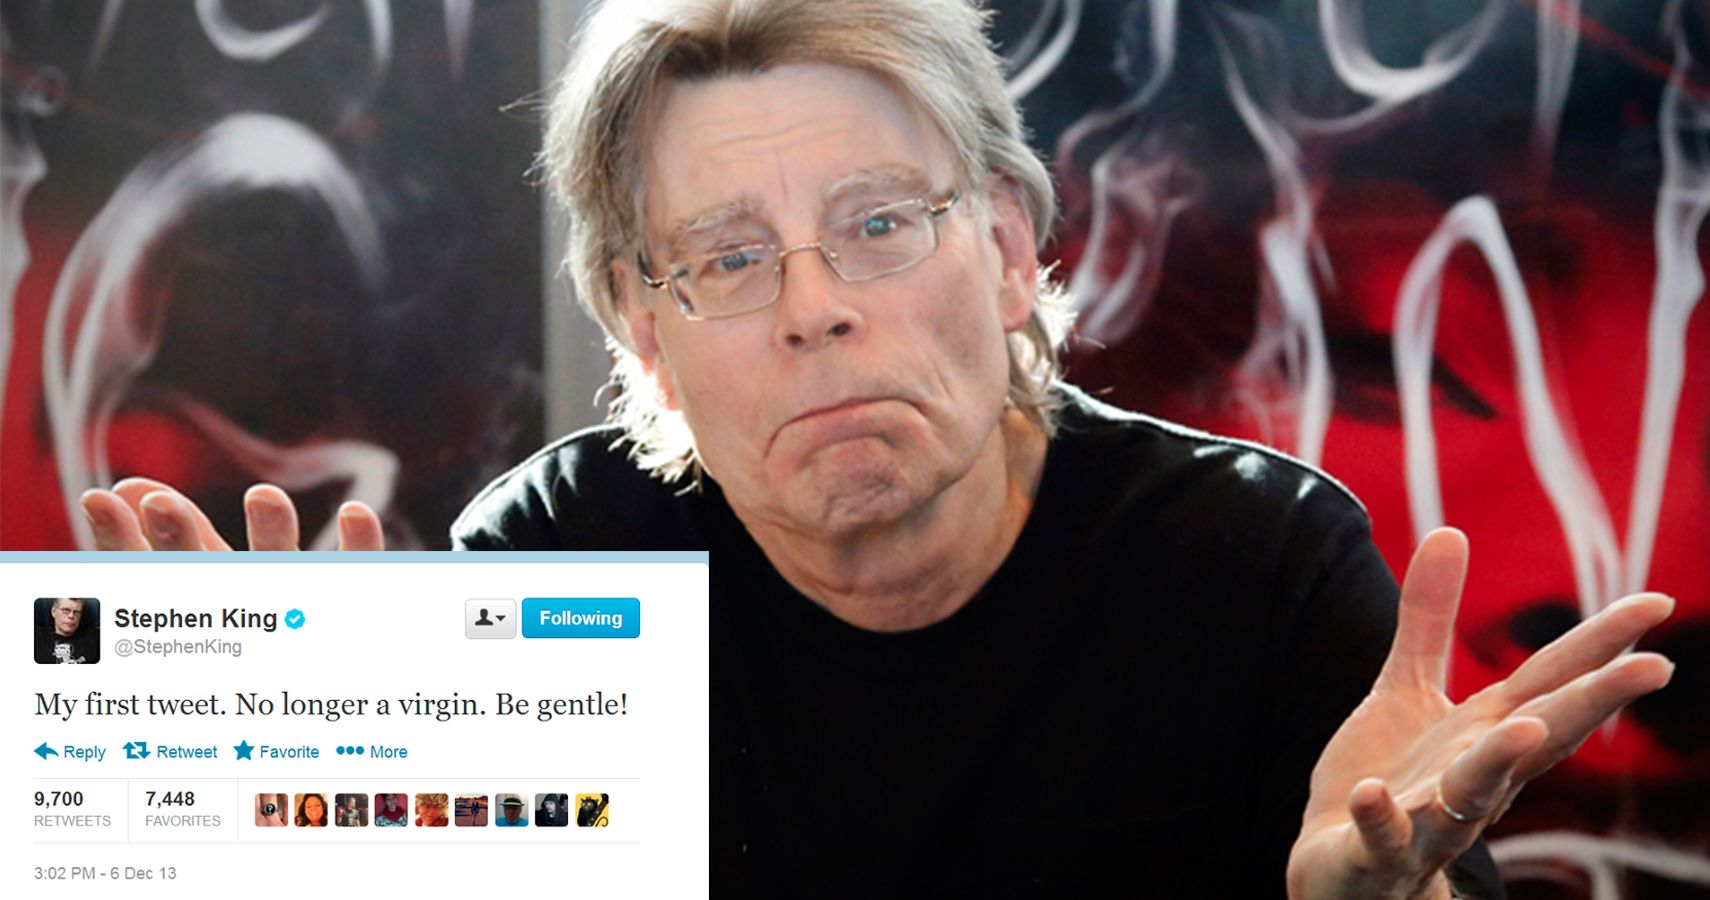 stephen king essay on taxes